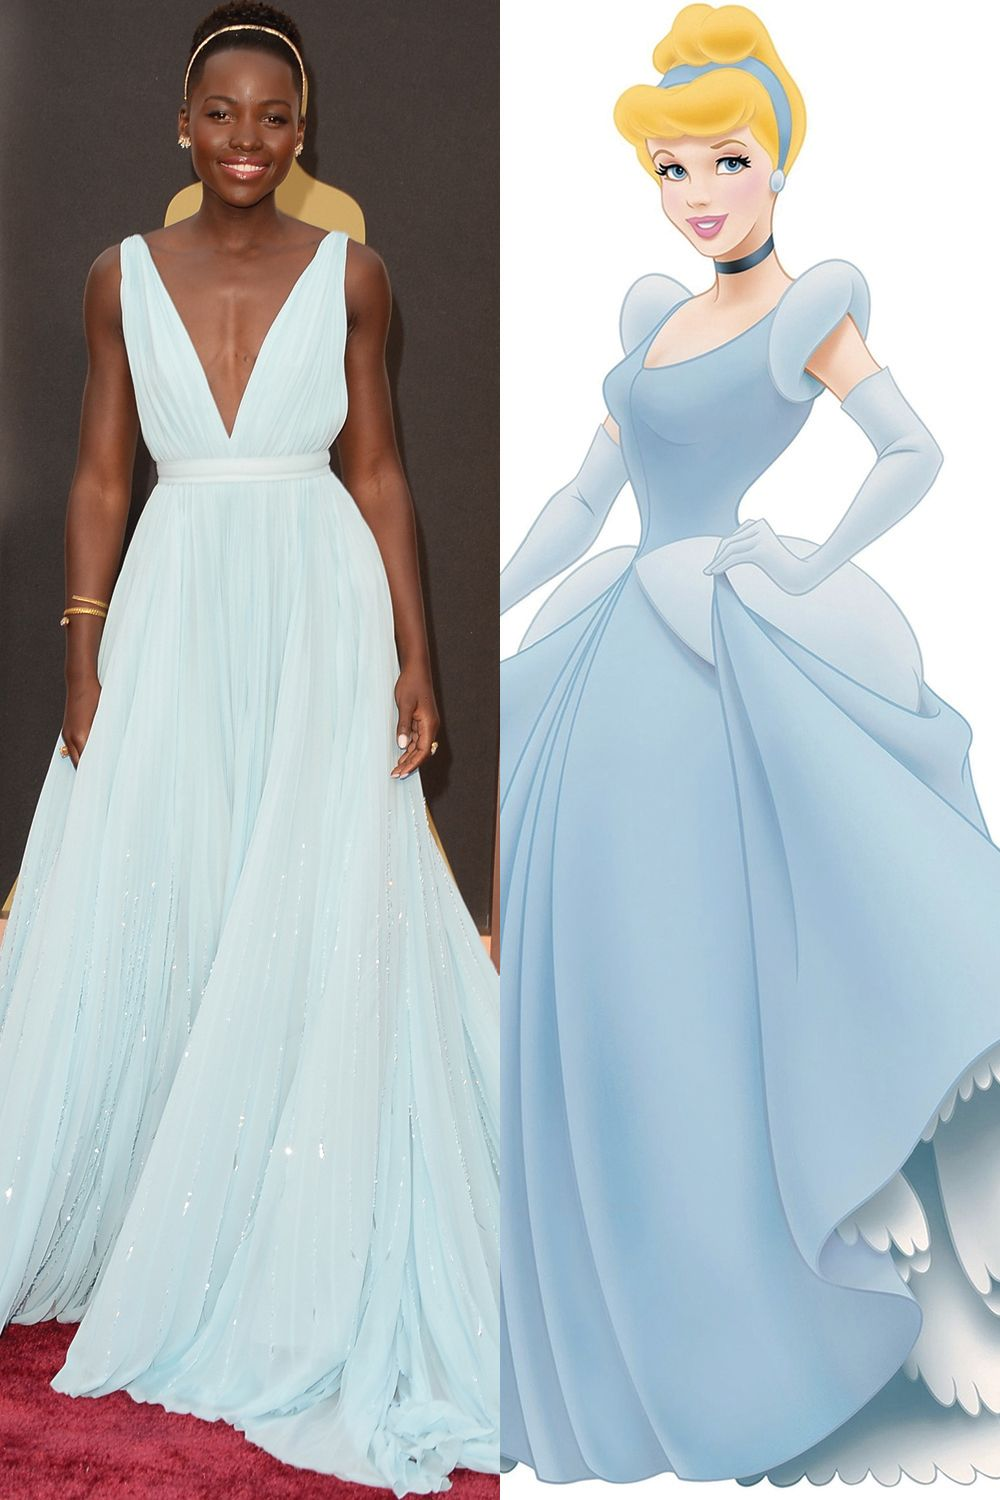 Lupita Nyong'o in Prada as <em>Cinderella. </em>